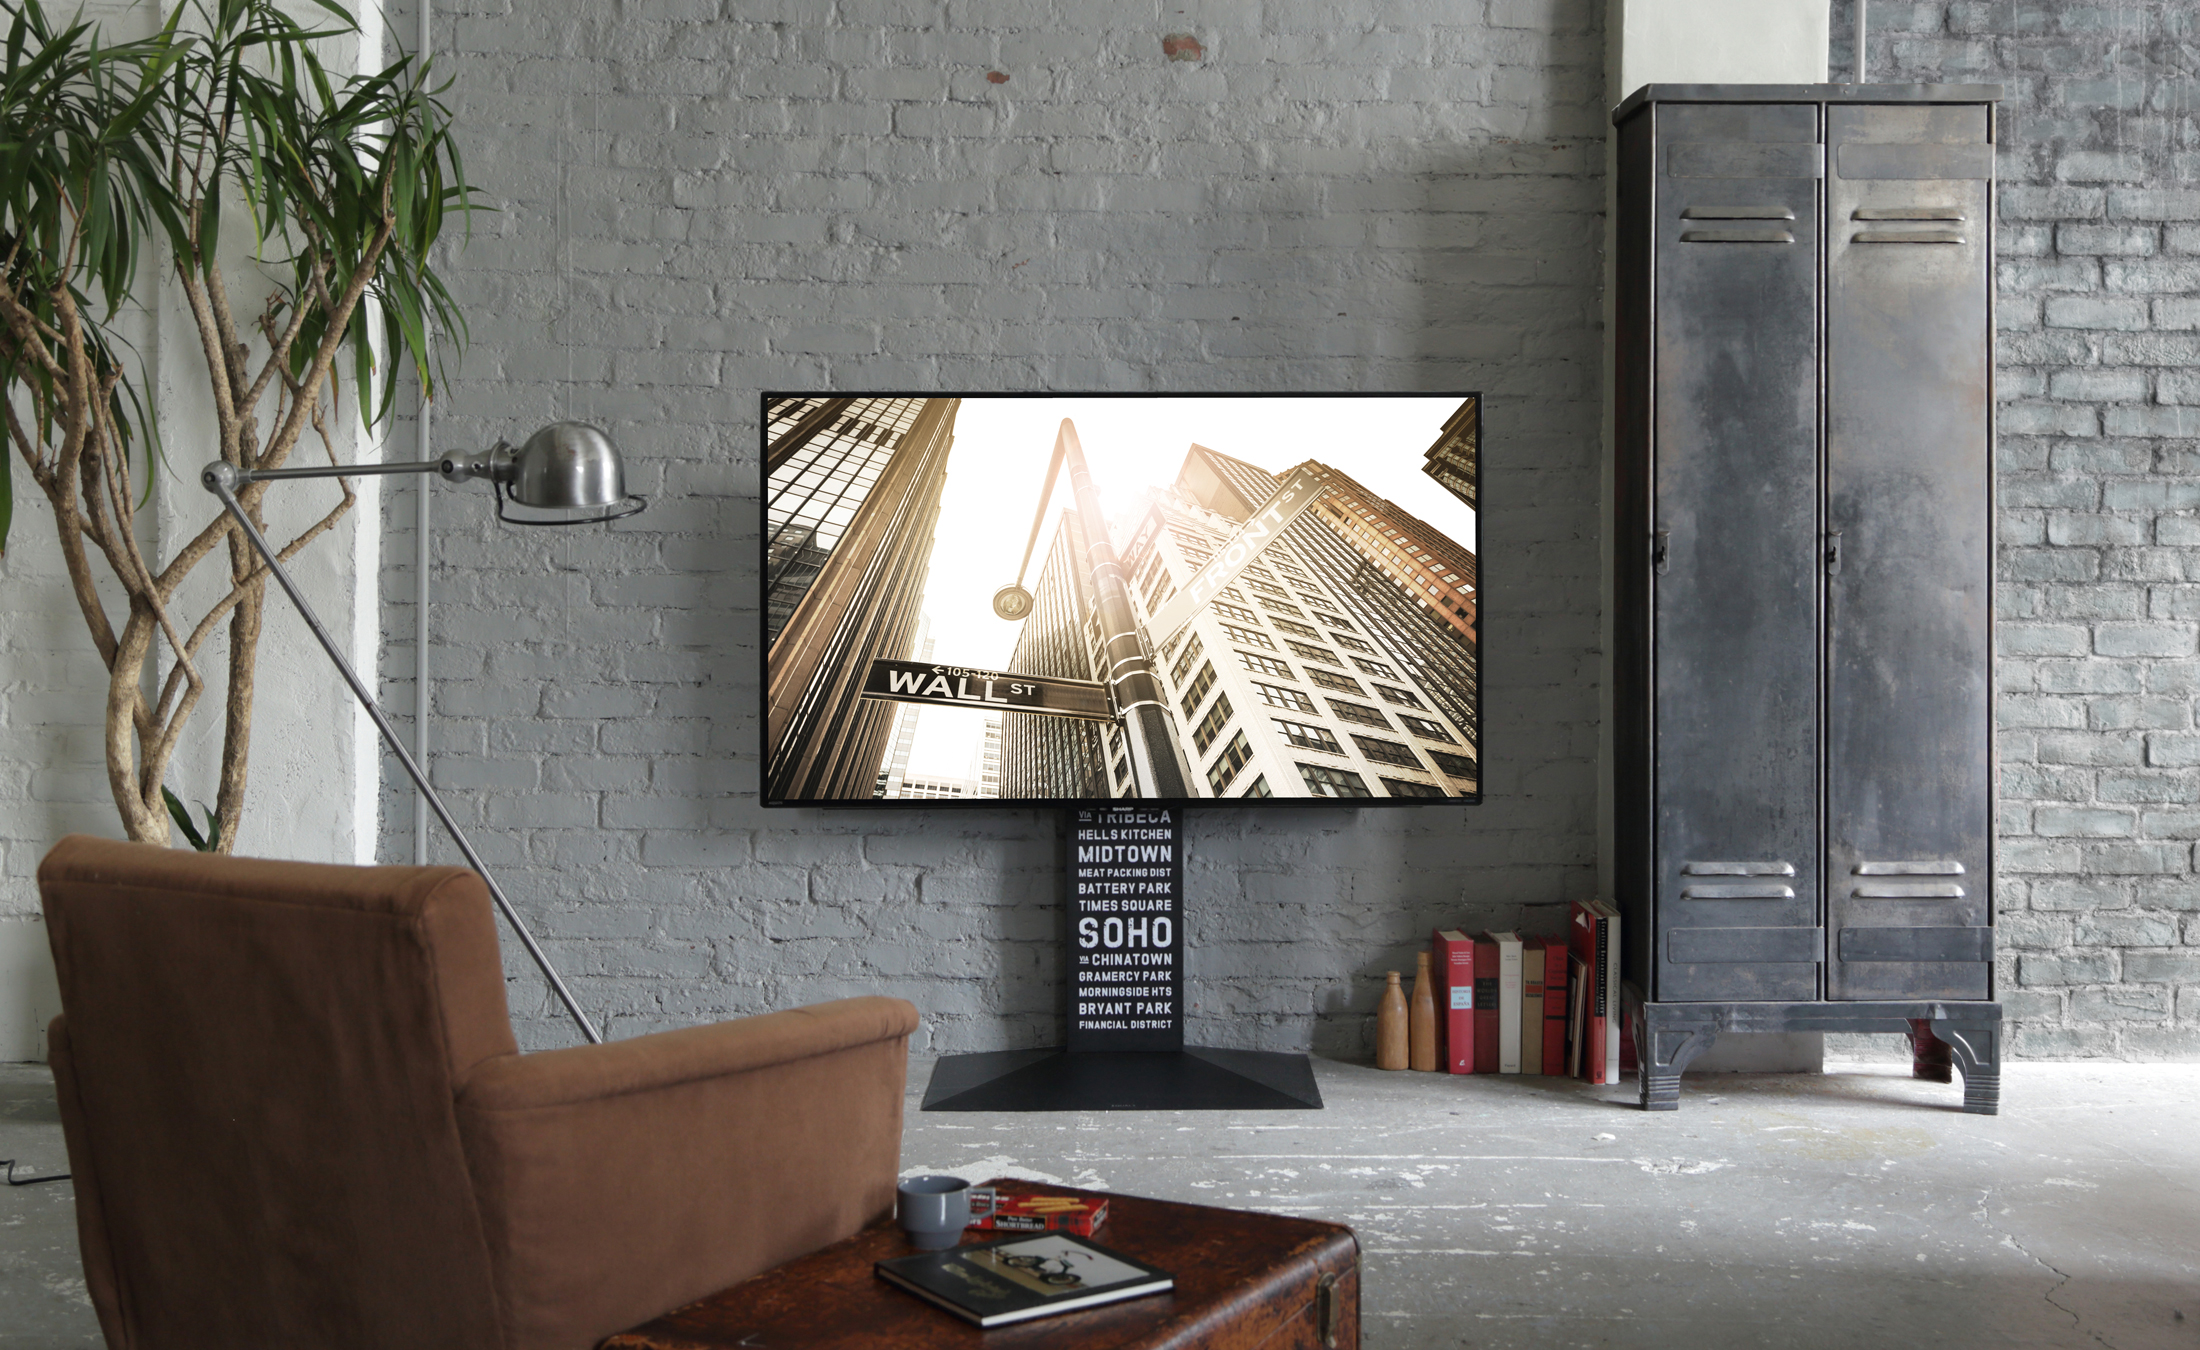 WALL INTERIOR TV STAND V3 壁寄せテレビスタンドV3 LIVING ROOM